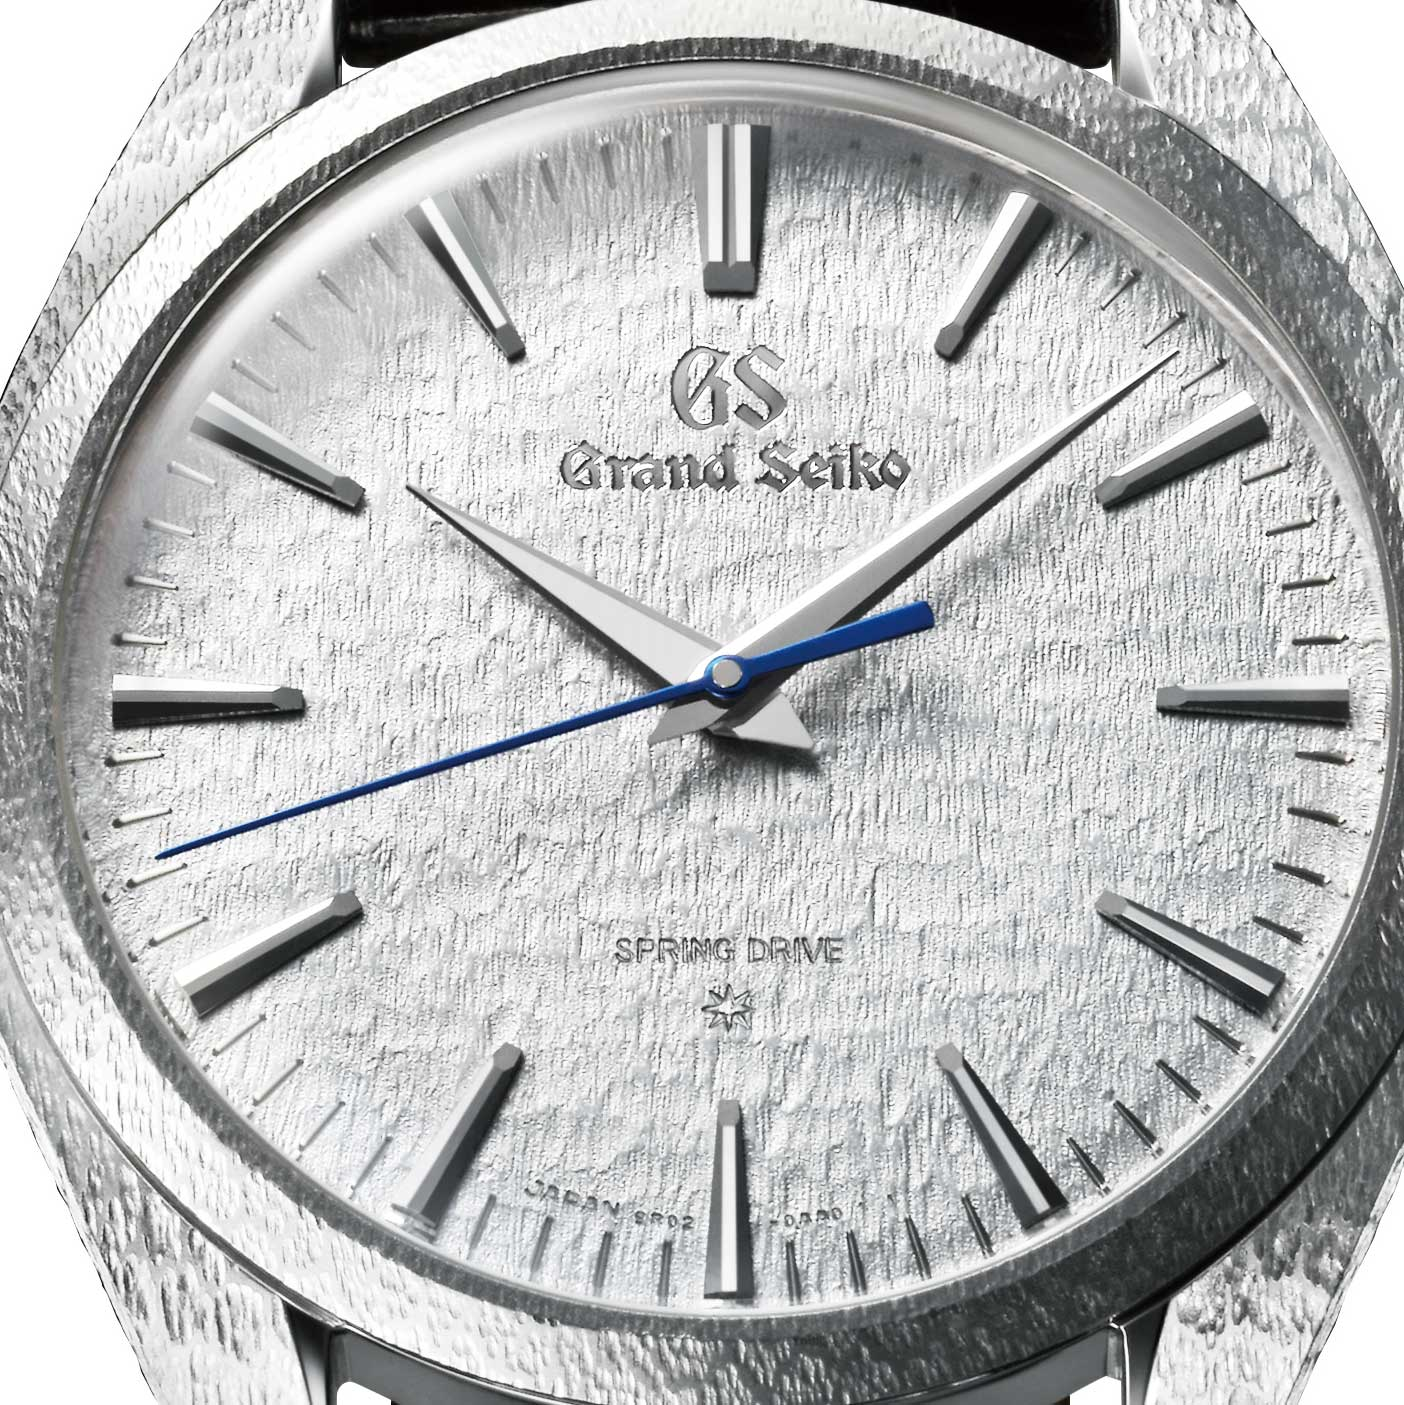 Closer look at the dial of the 2019 Grand Seiko 20th Anniversary Of Spring Drive, in platinum - limited to 30 pieces - ref. SBGZ001 (Image: Grand Seiko)